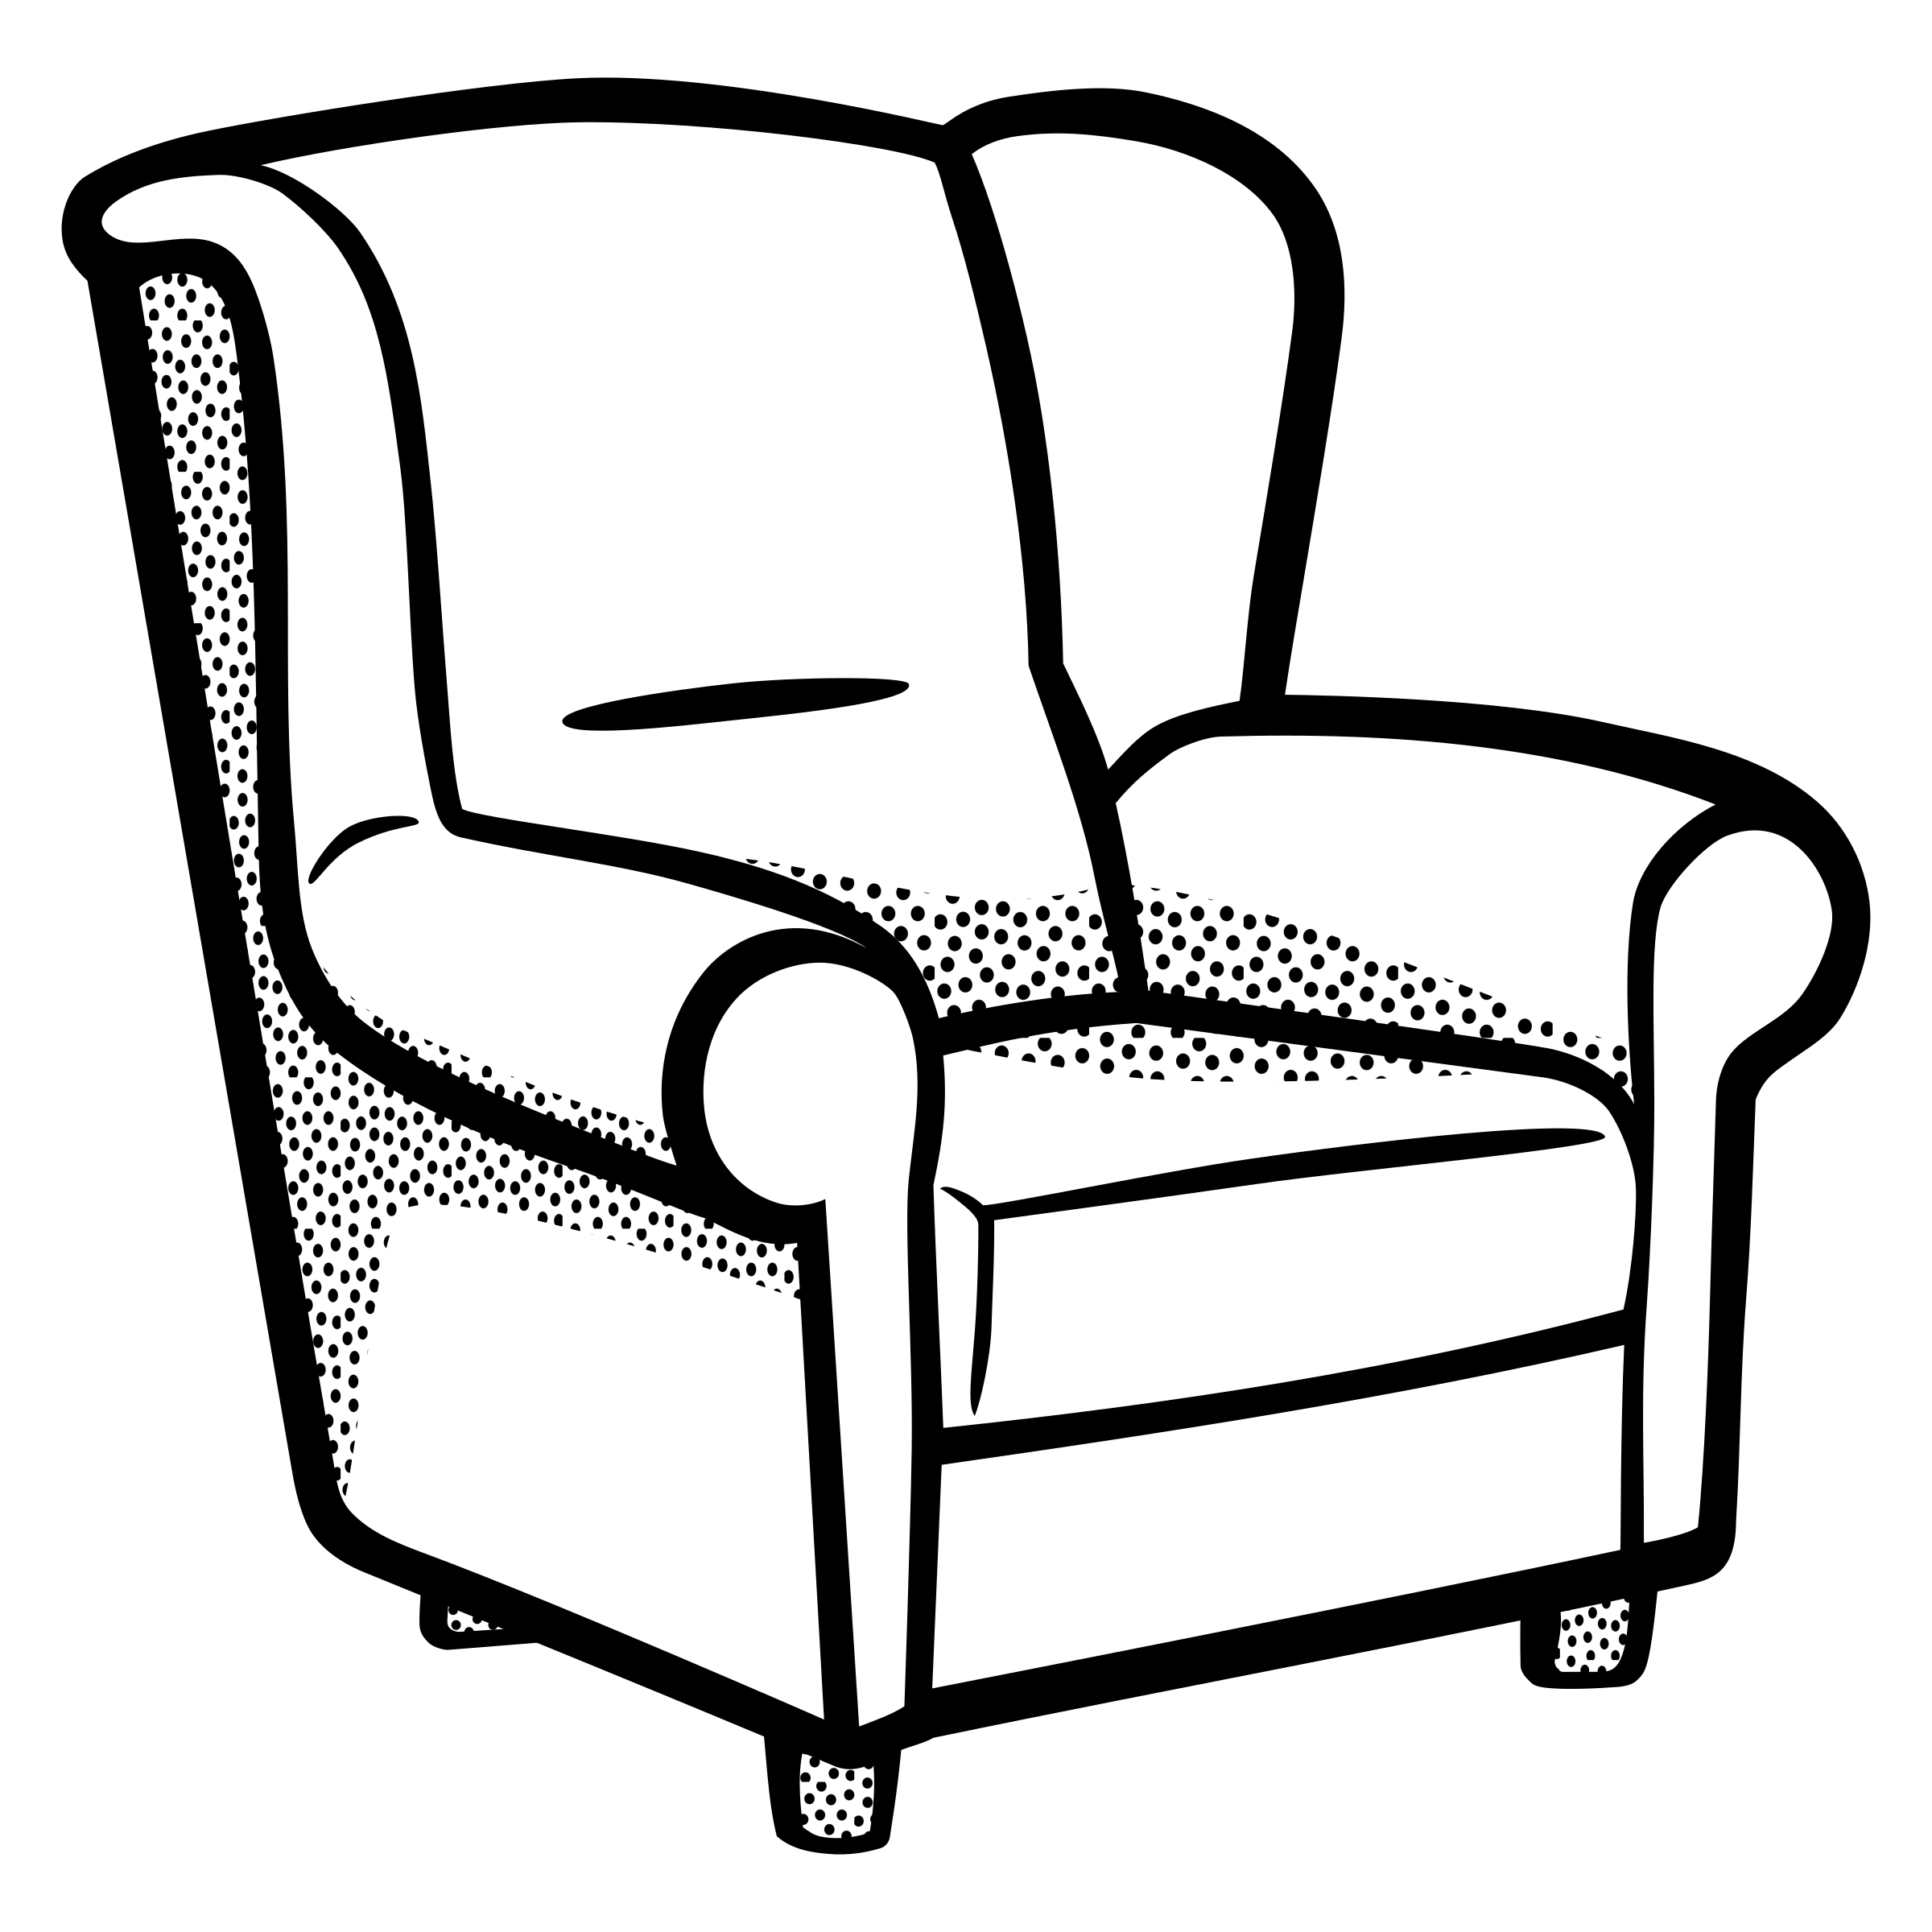 Furniture clipart comfy chair. Armchair drawing x m